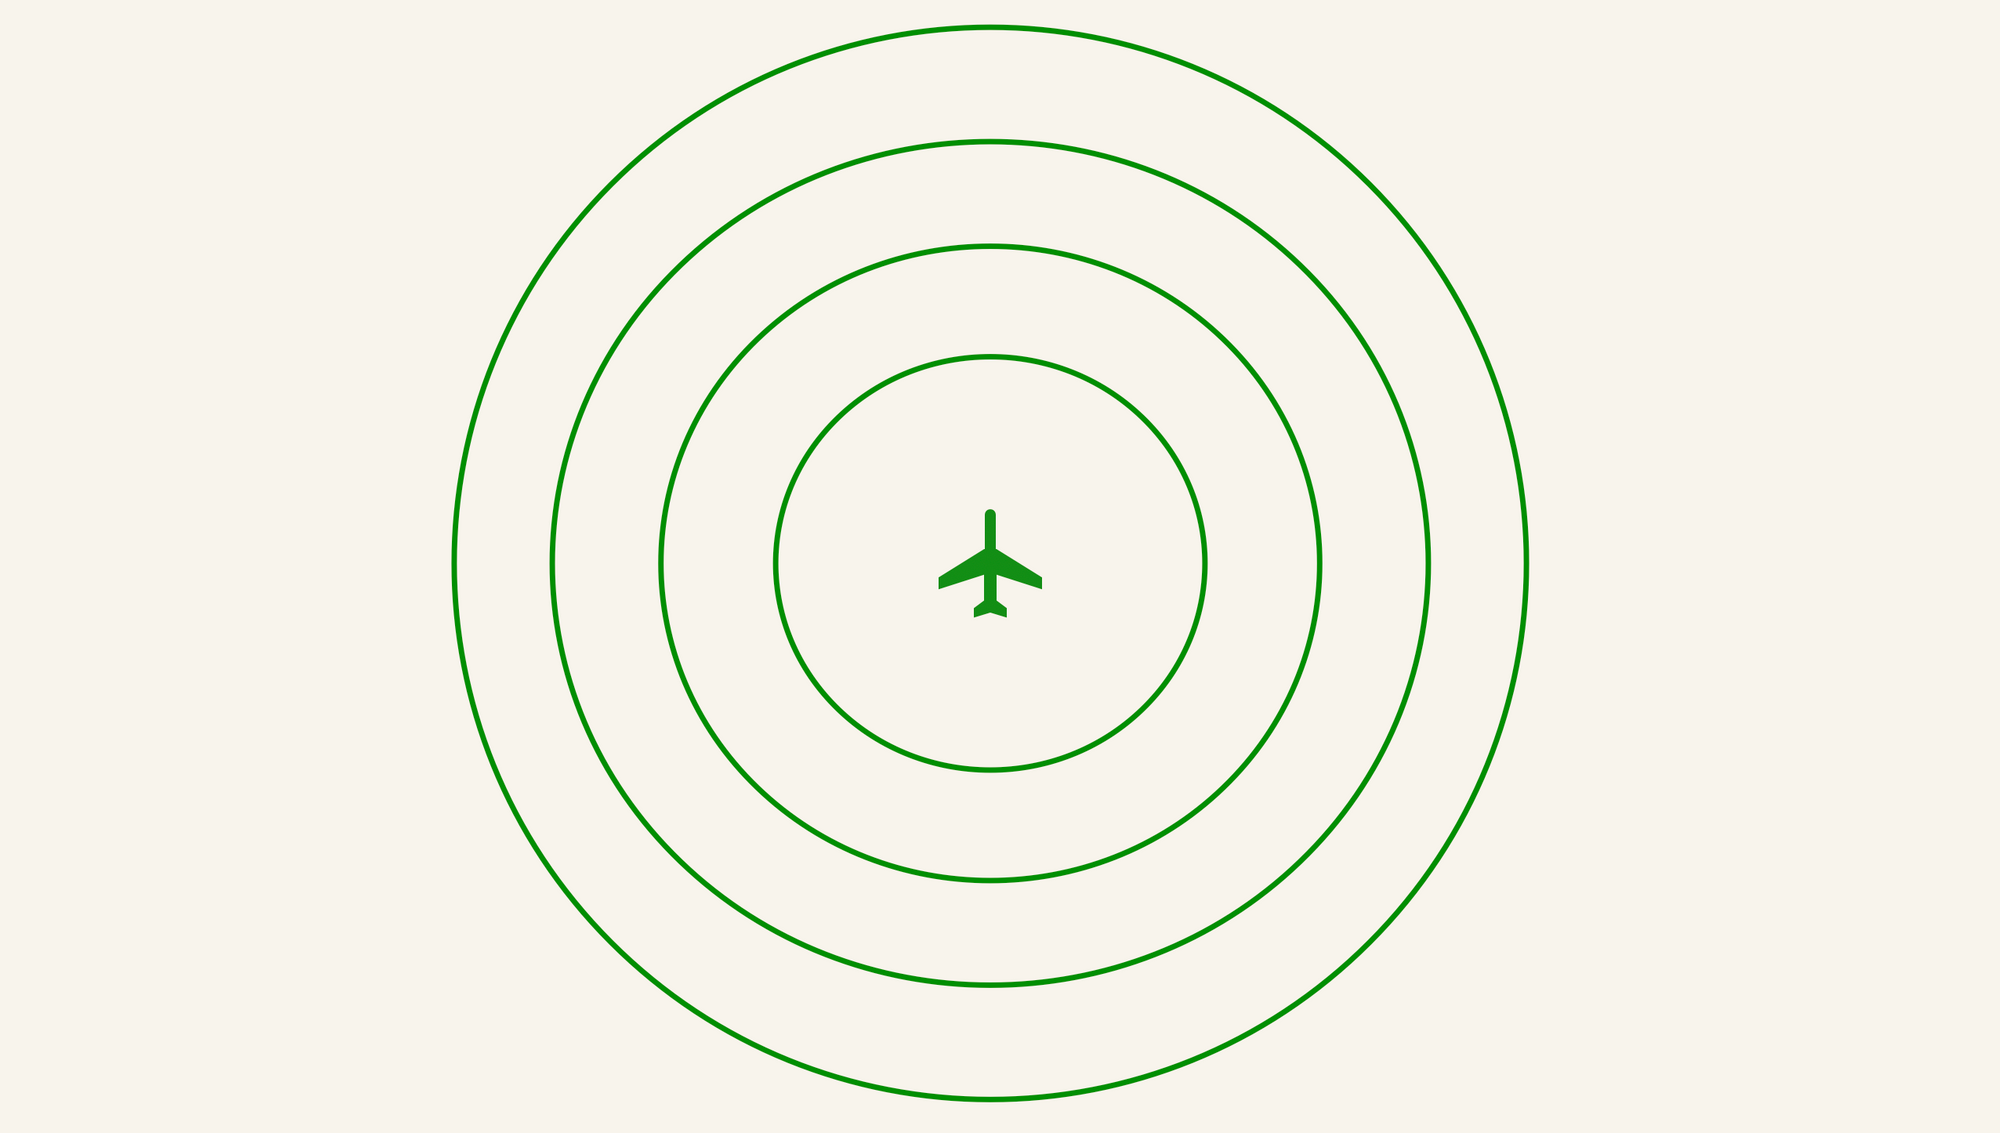 The blank risk radar is just a few concentric circles with an aeroplane icon in the middle